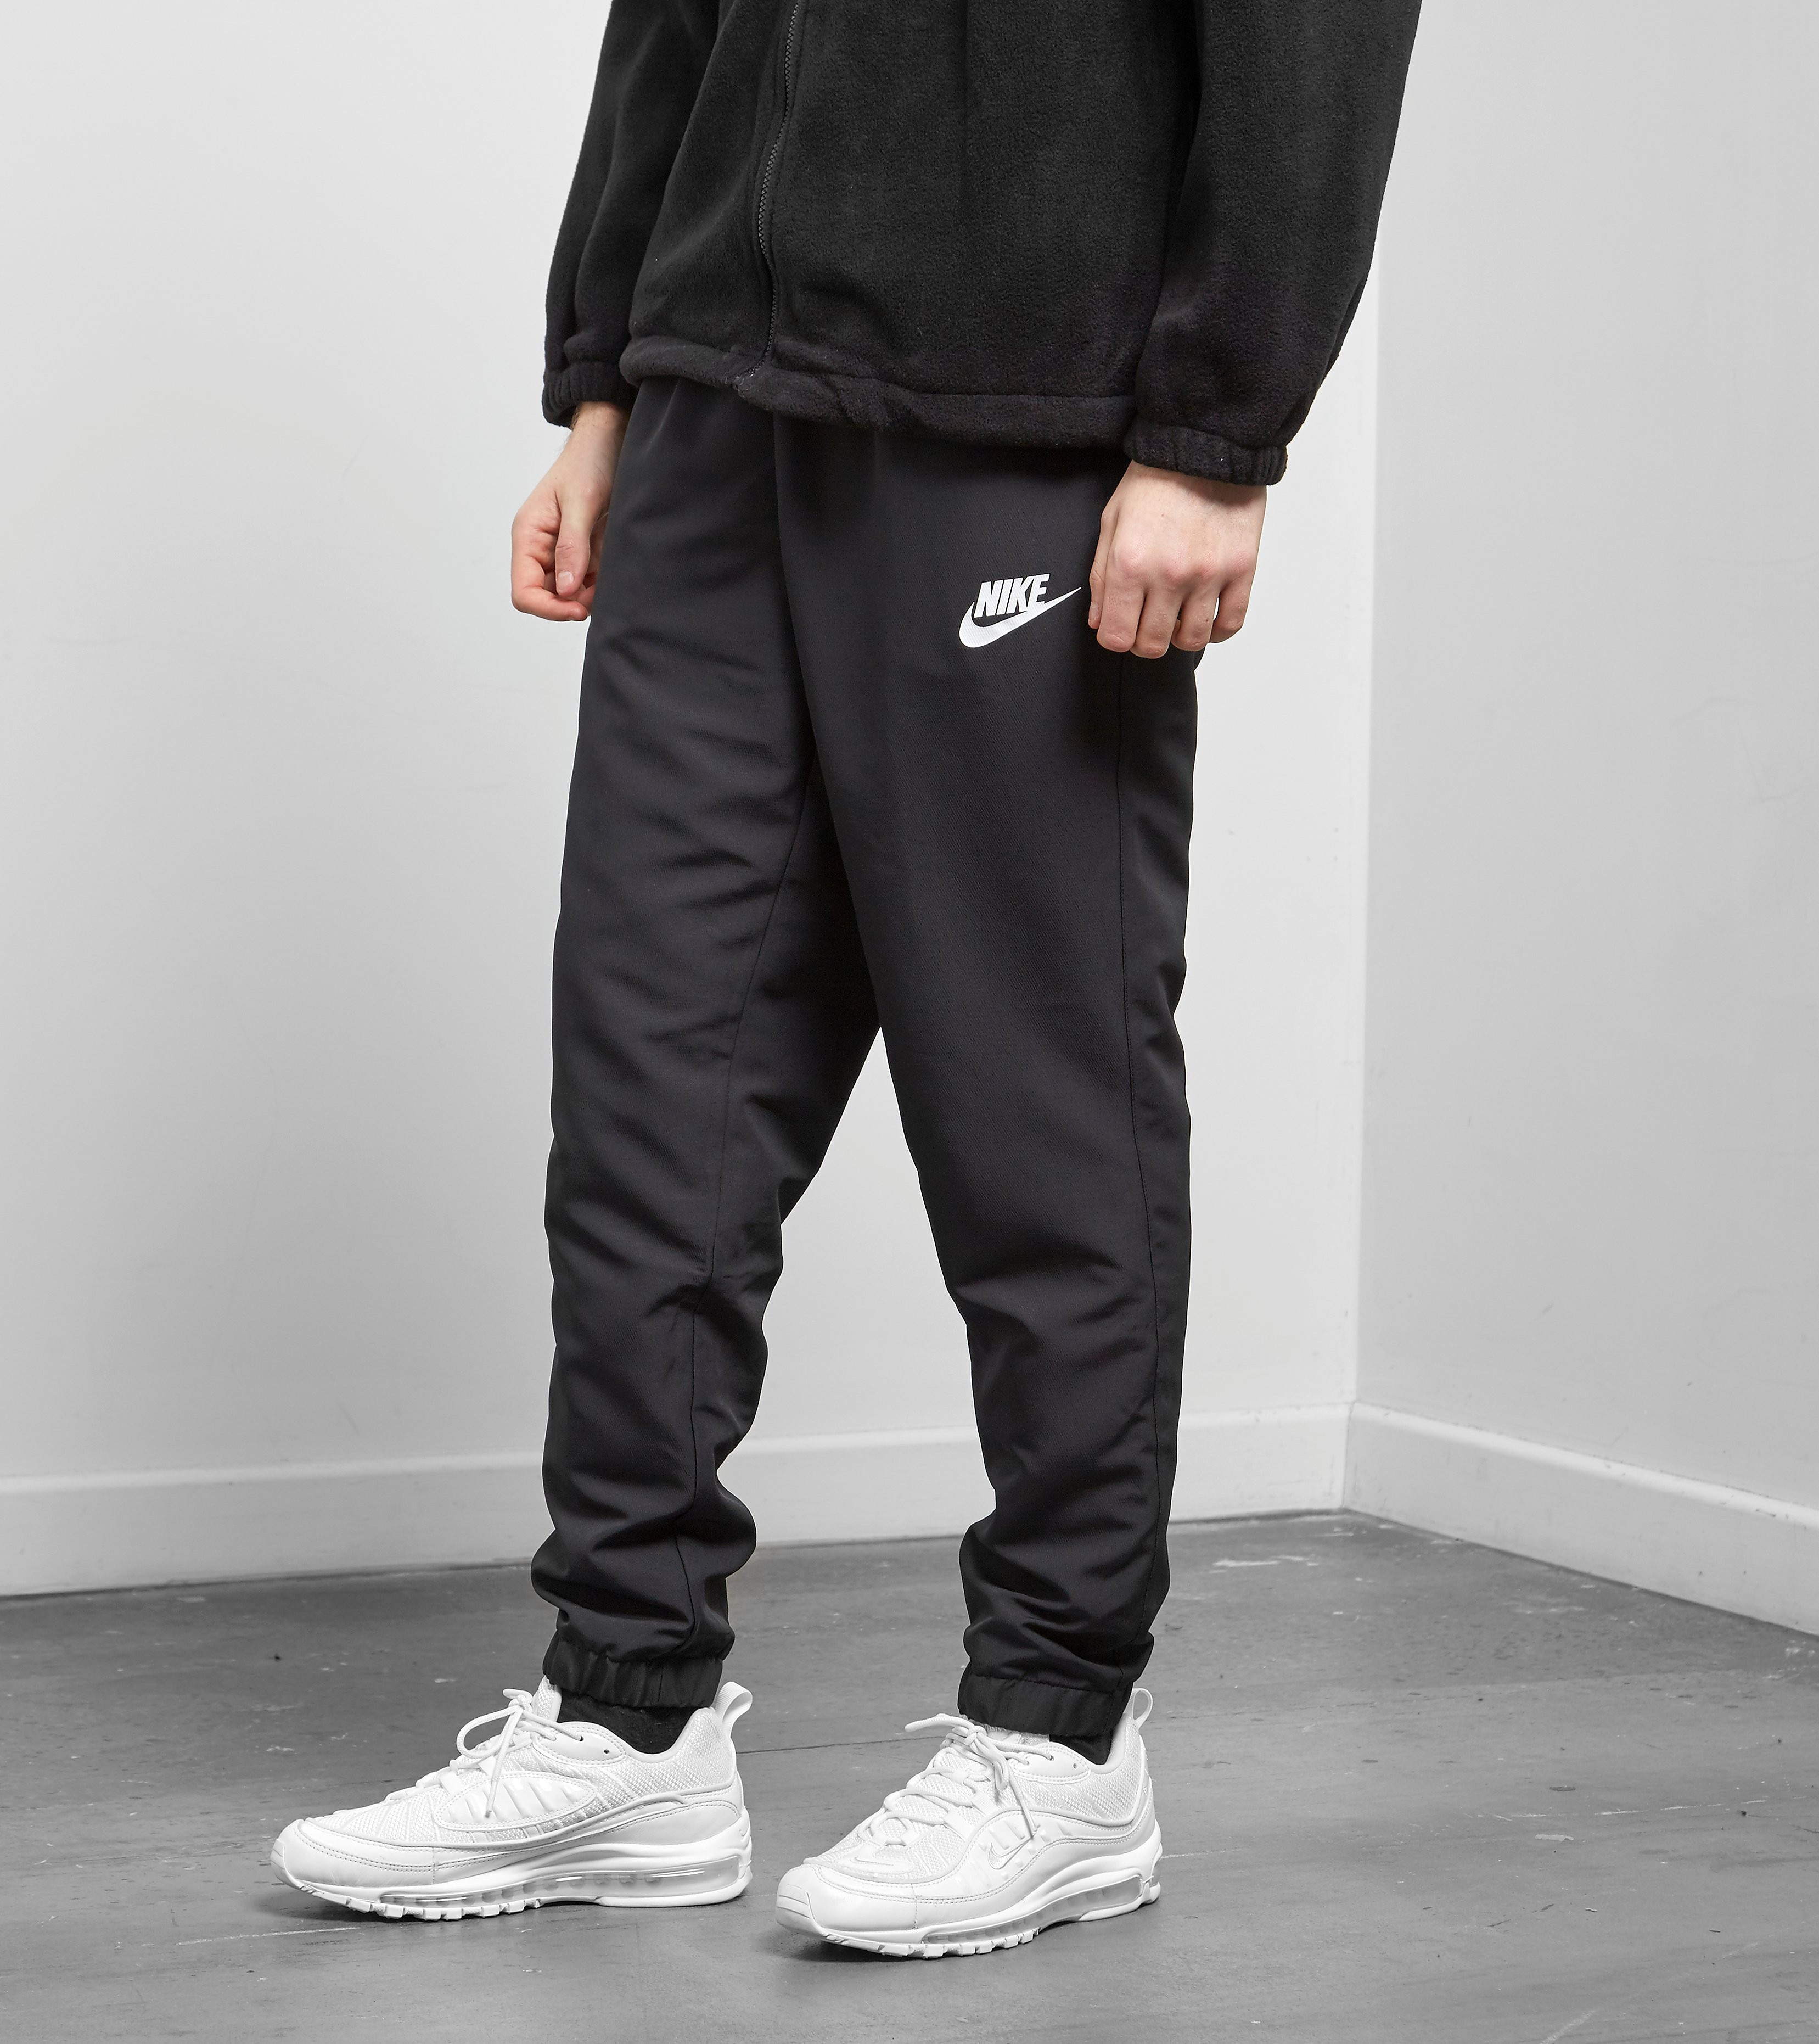 Nike Shut Out 2 Woven Pants